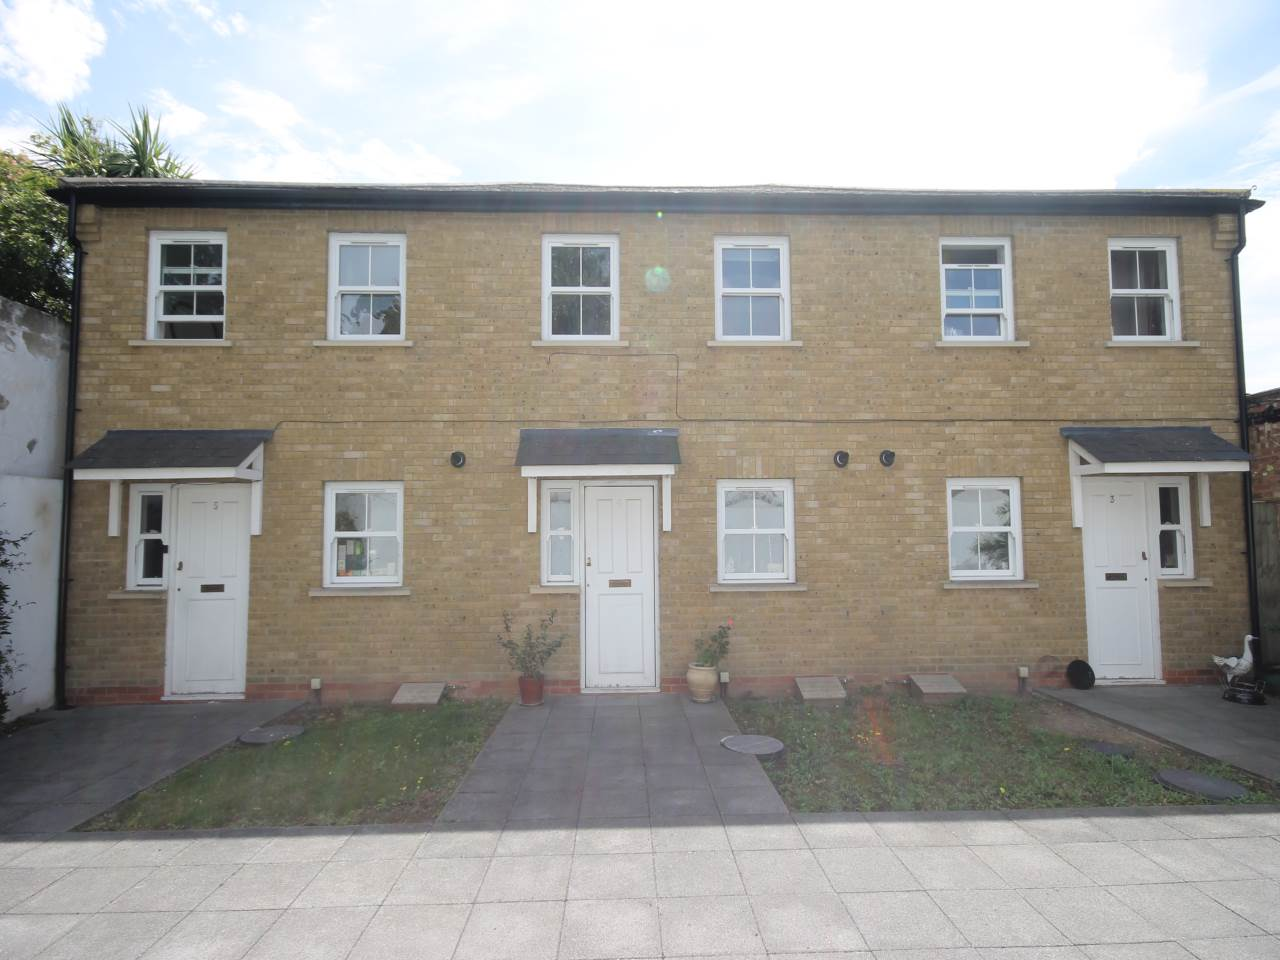 2 bed house to rent in Eden Road, E17